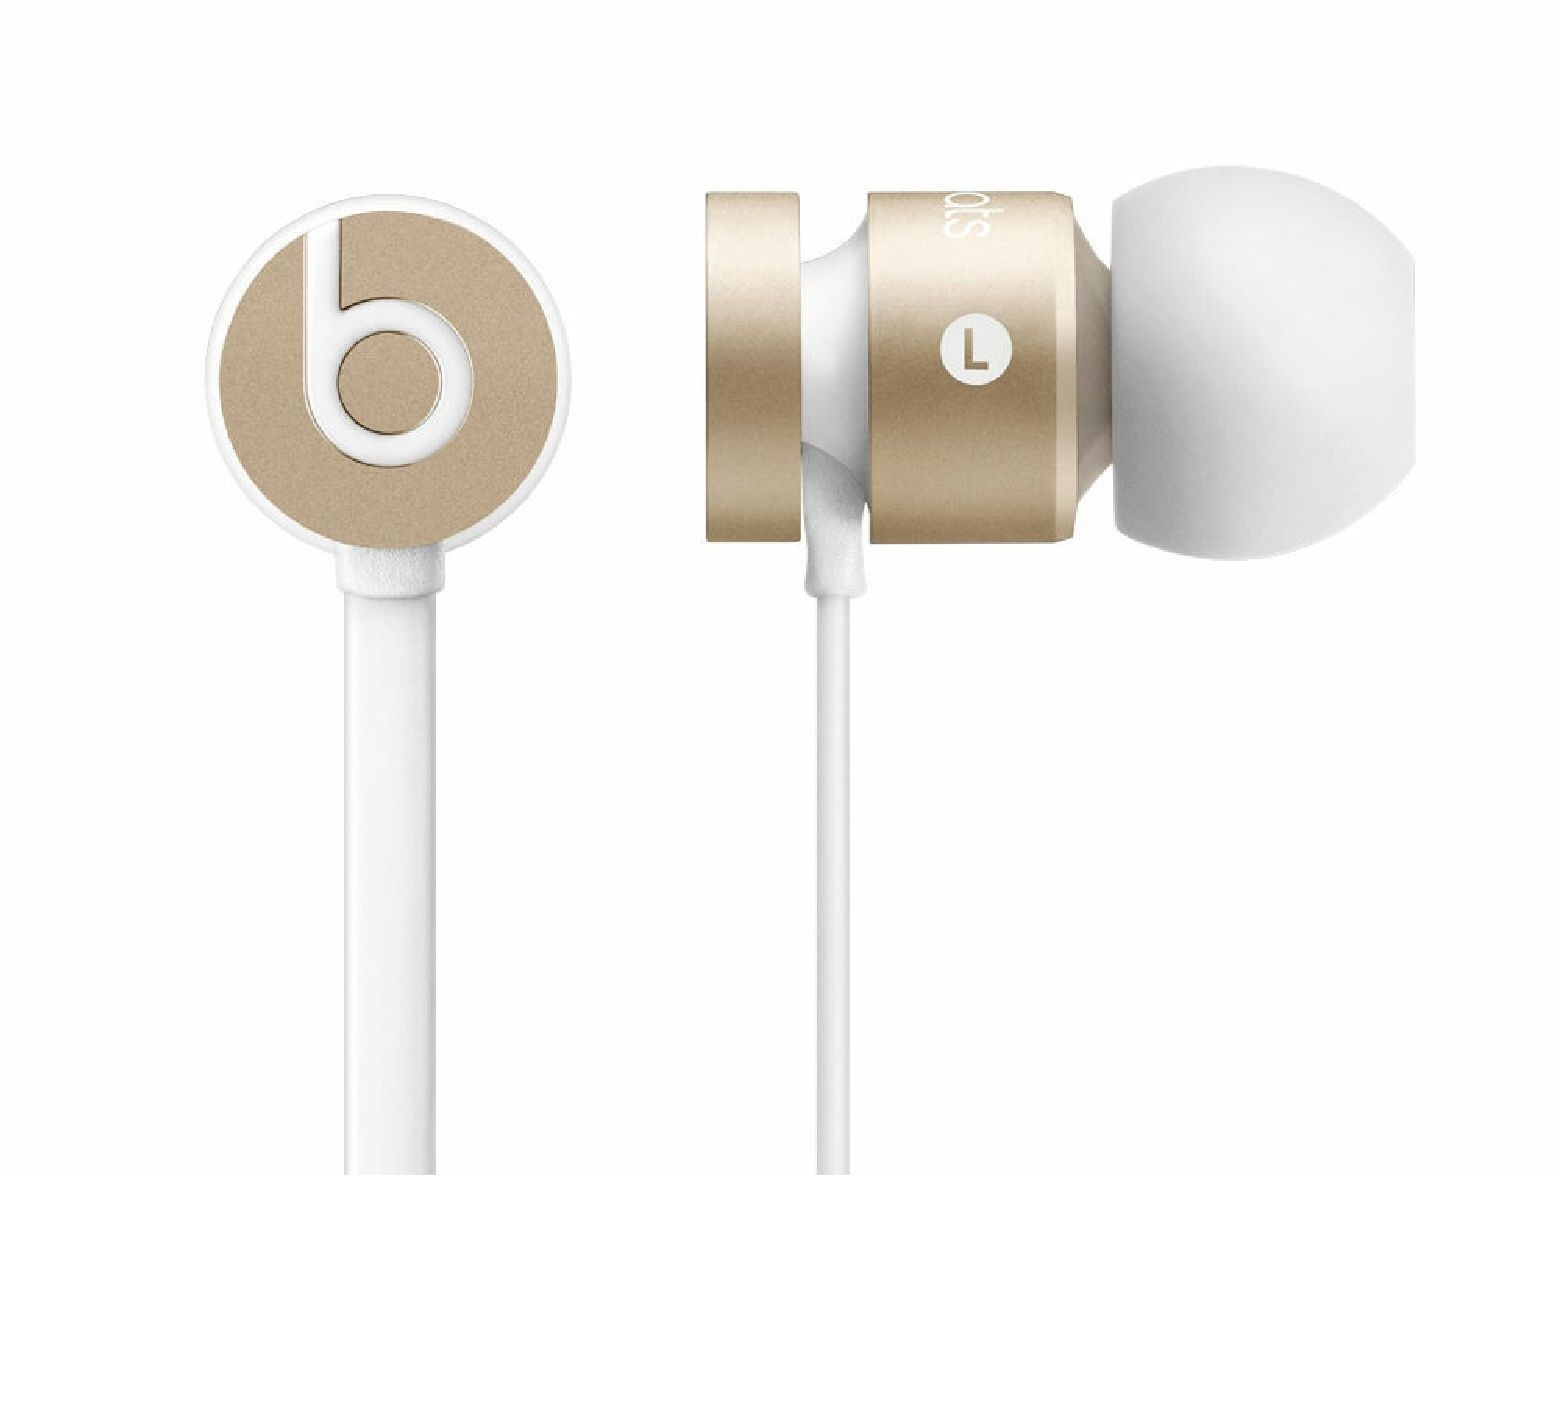 Image of Beats by Dre urbeats - white/gold